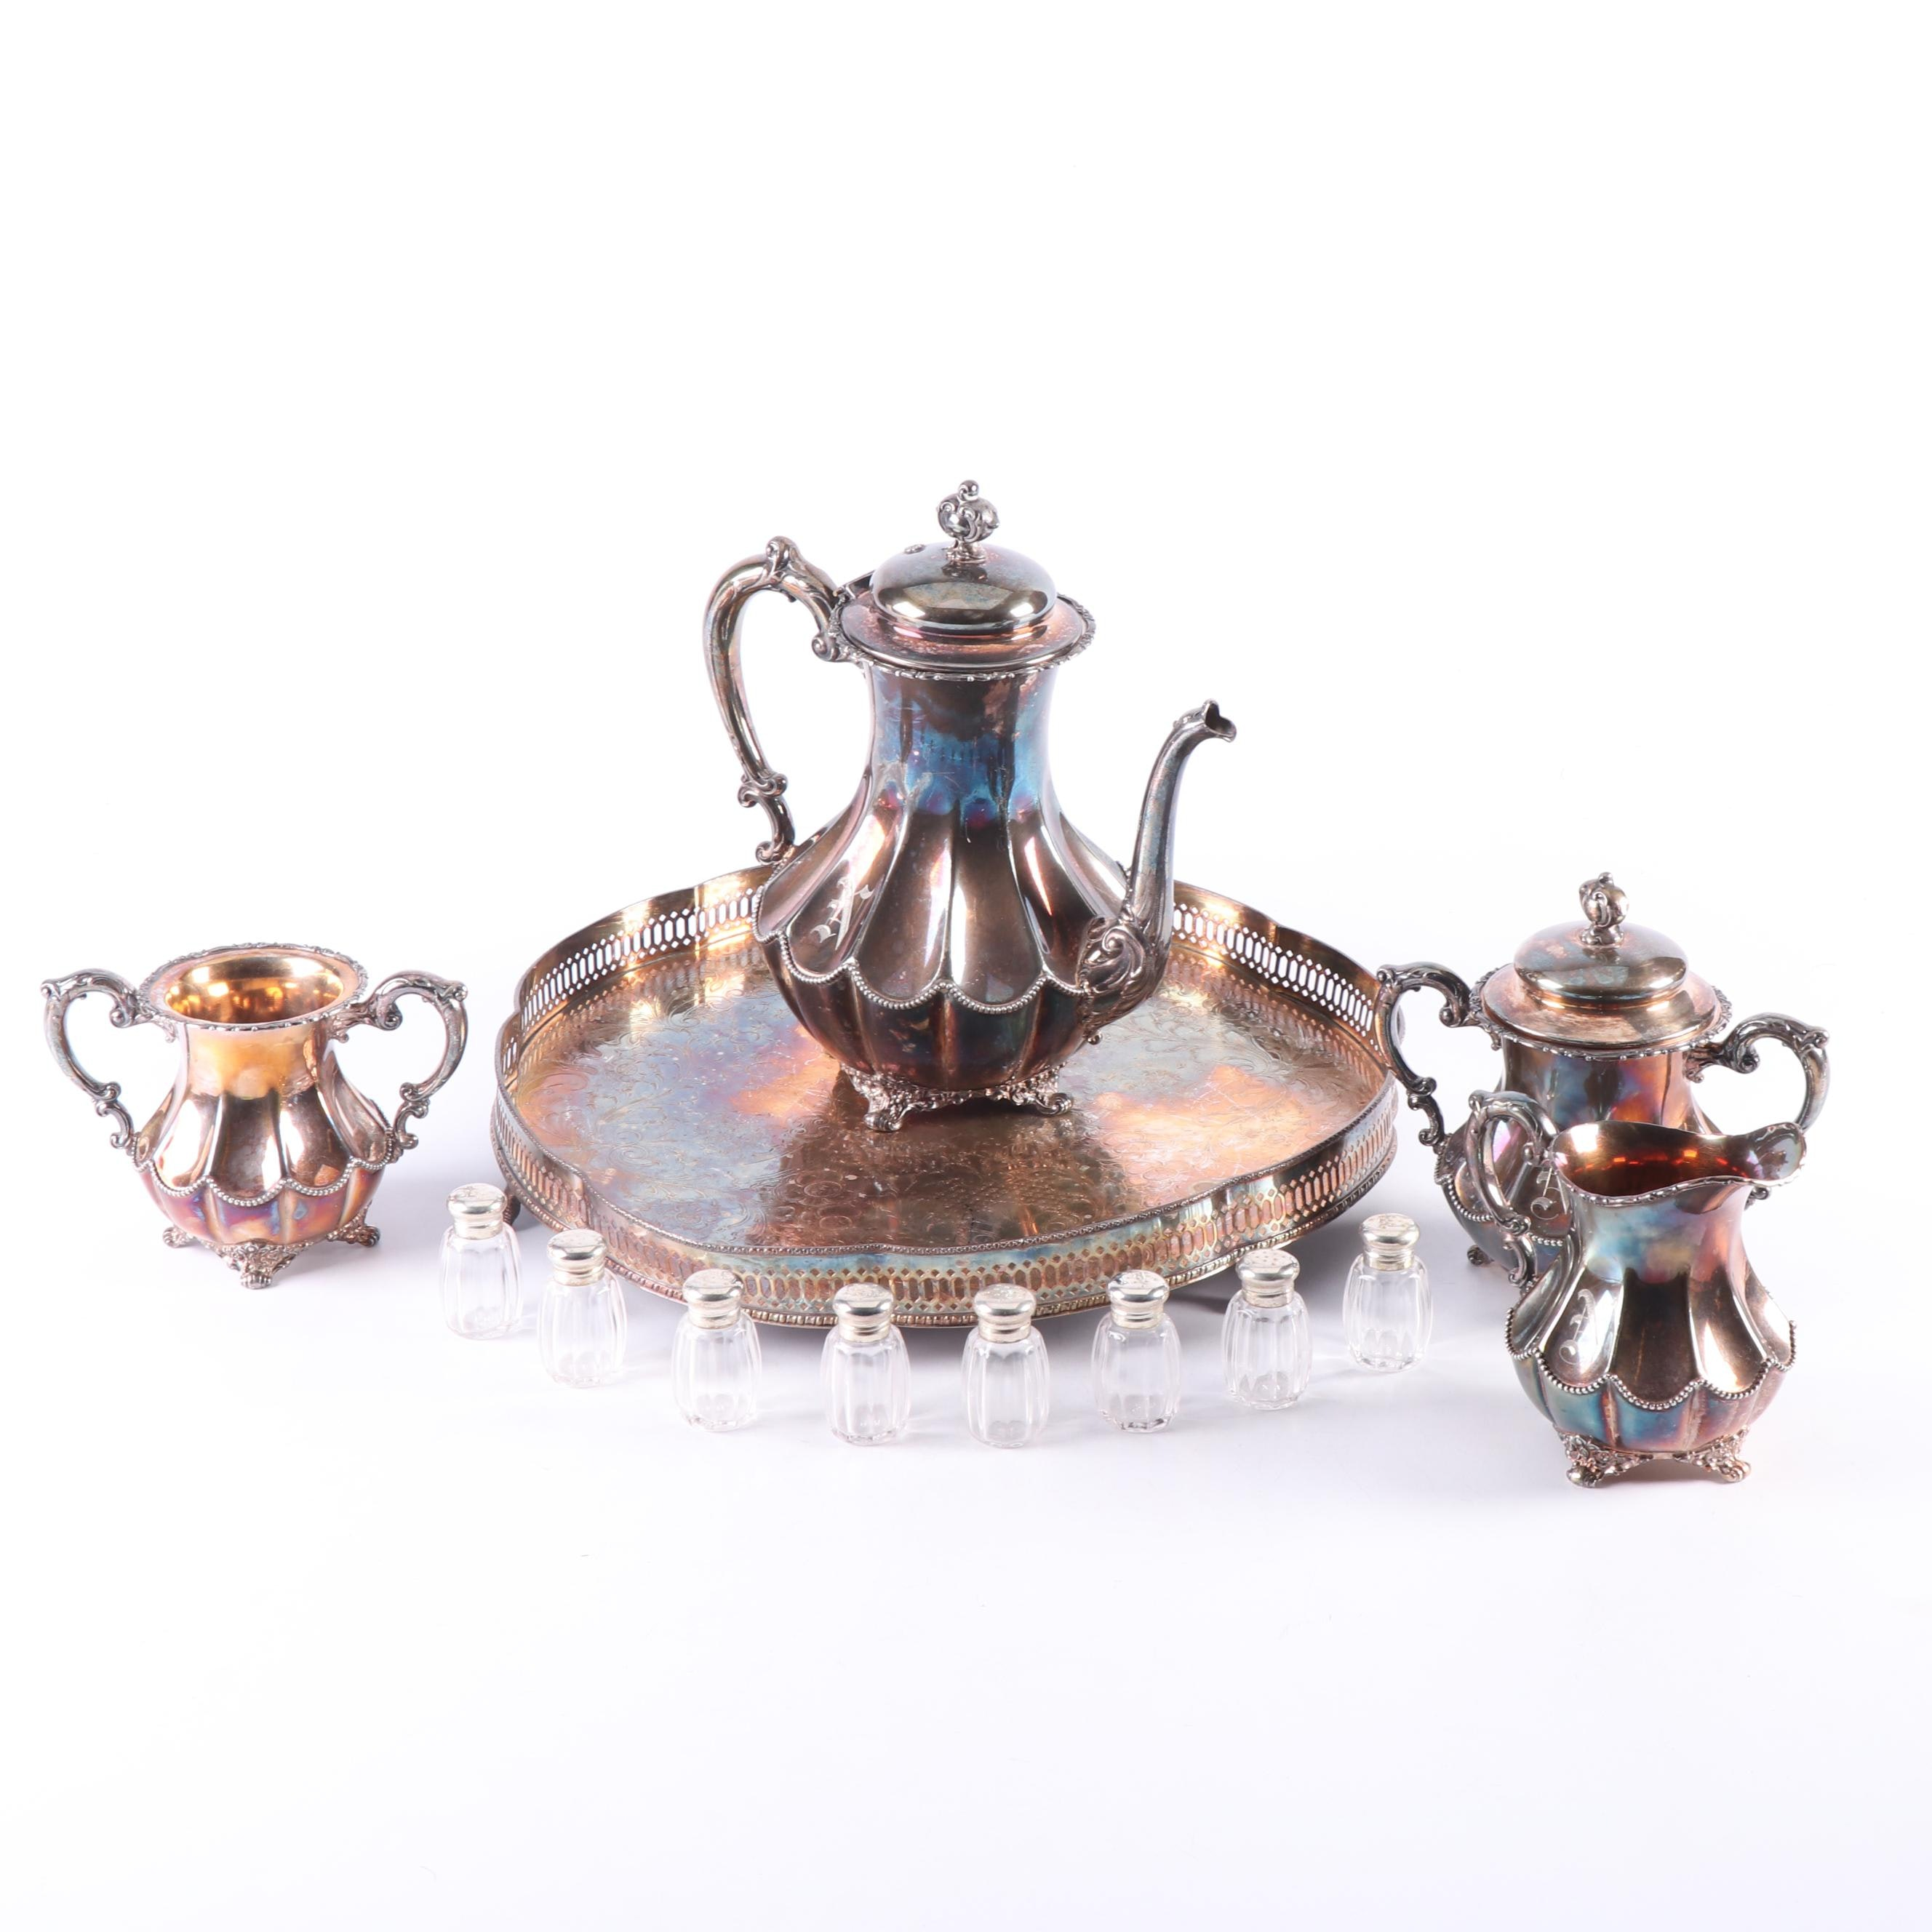 Homan Mfg. Co. Silver Plate Coffee Service Set, Early 20th Century